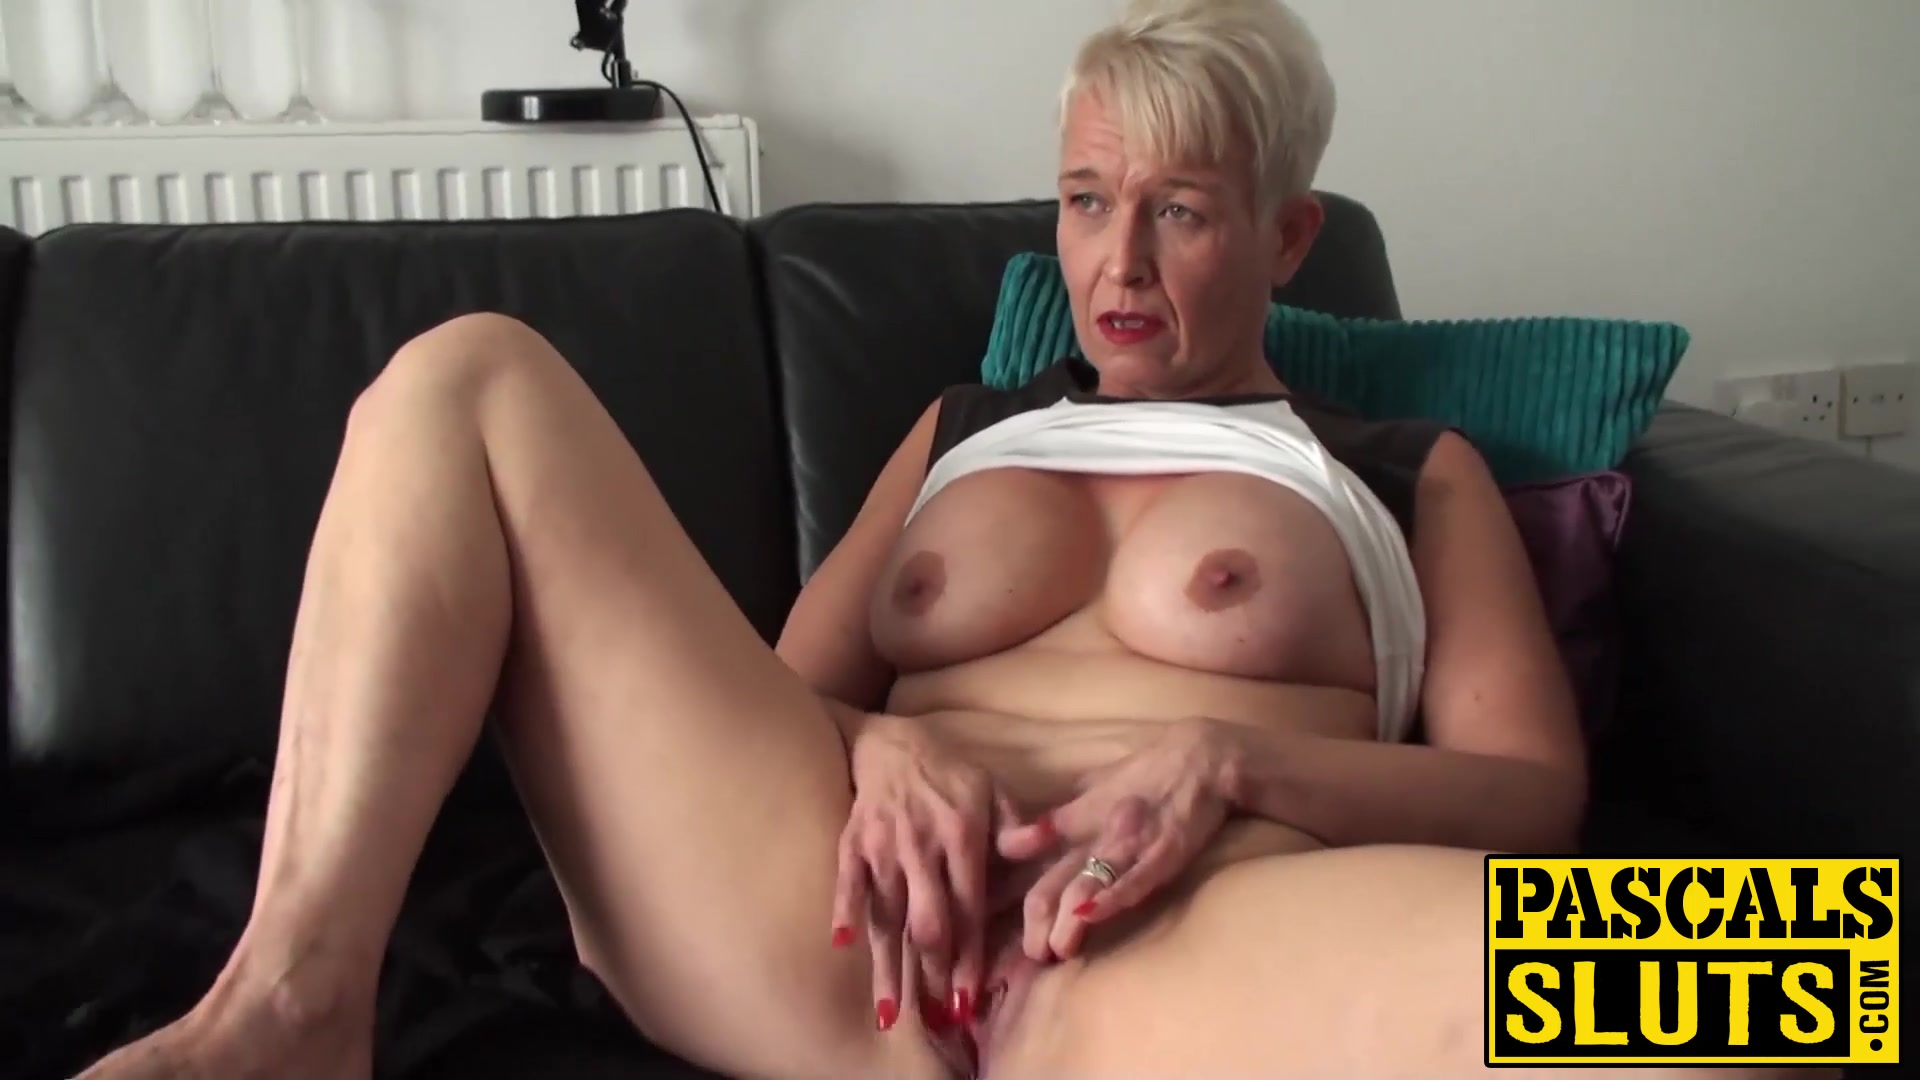 Mature babe nude great tits